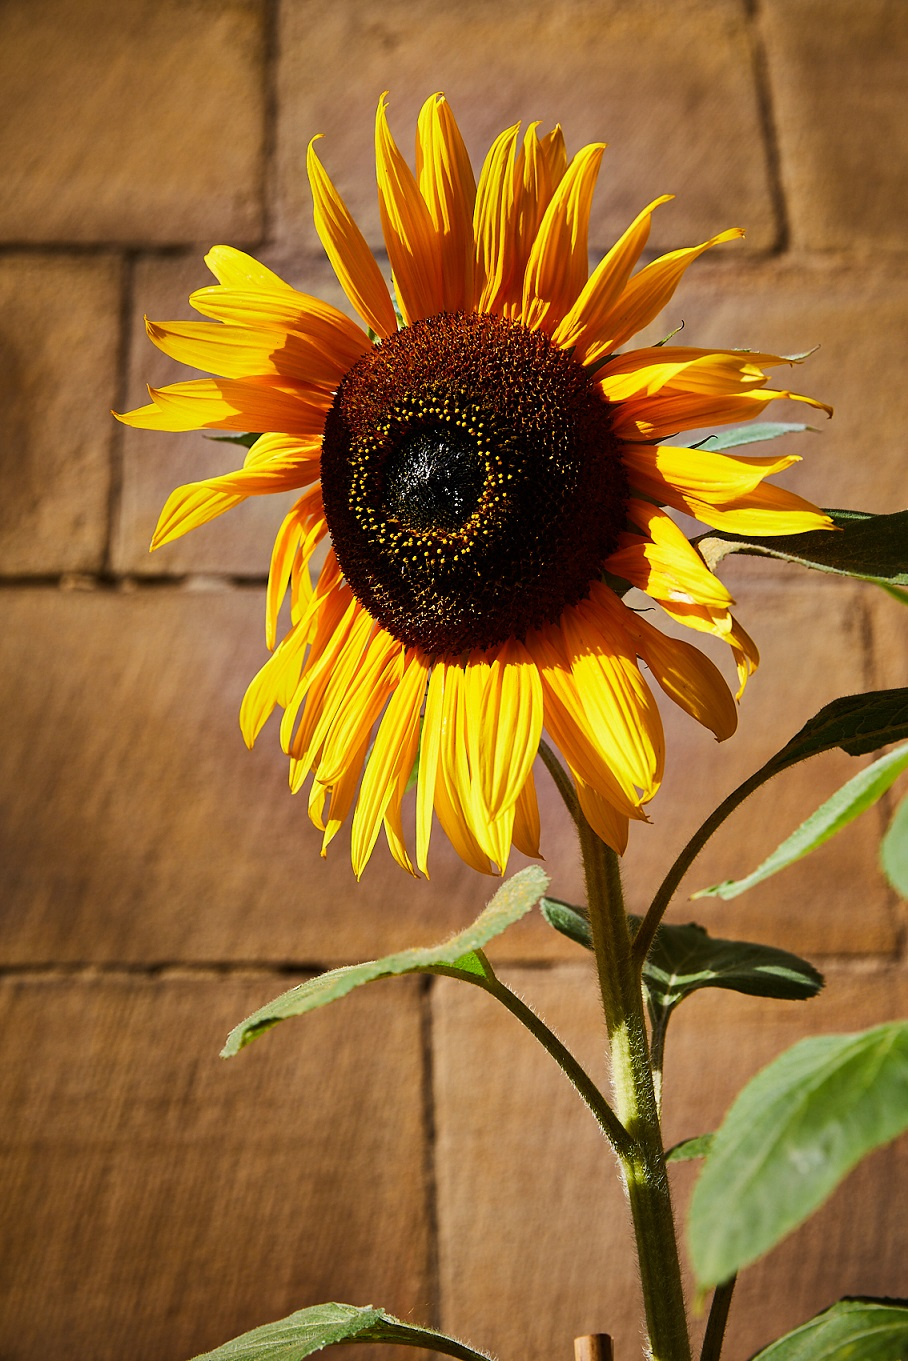 Close up on the head of a sunflower in full bloom